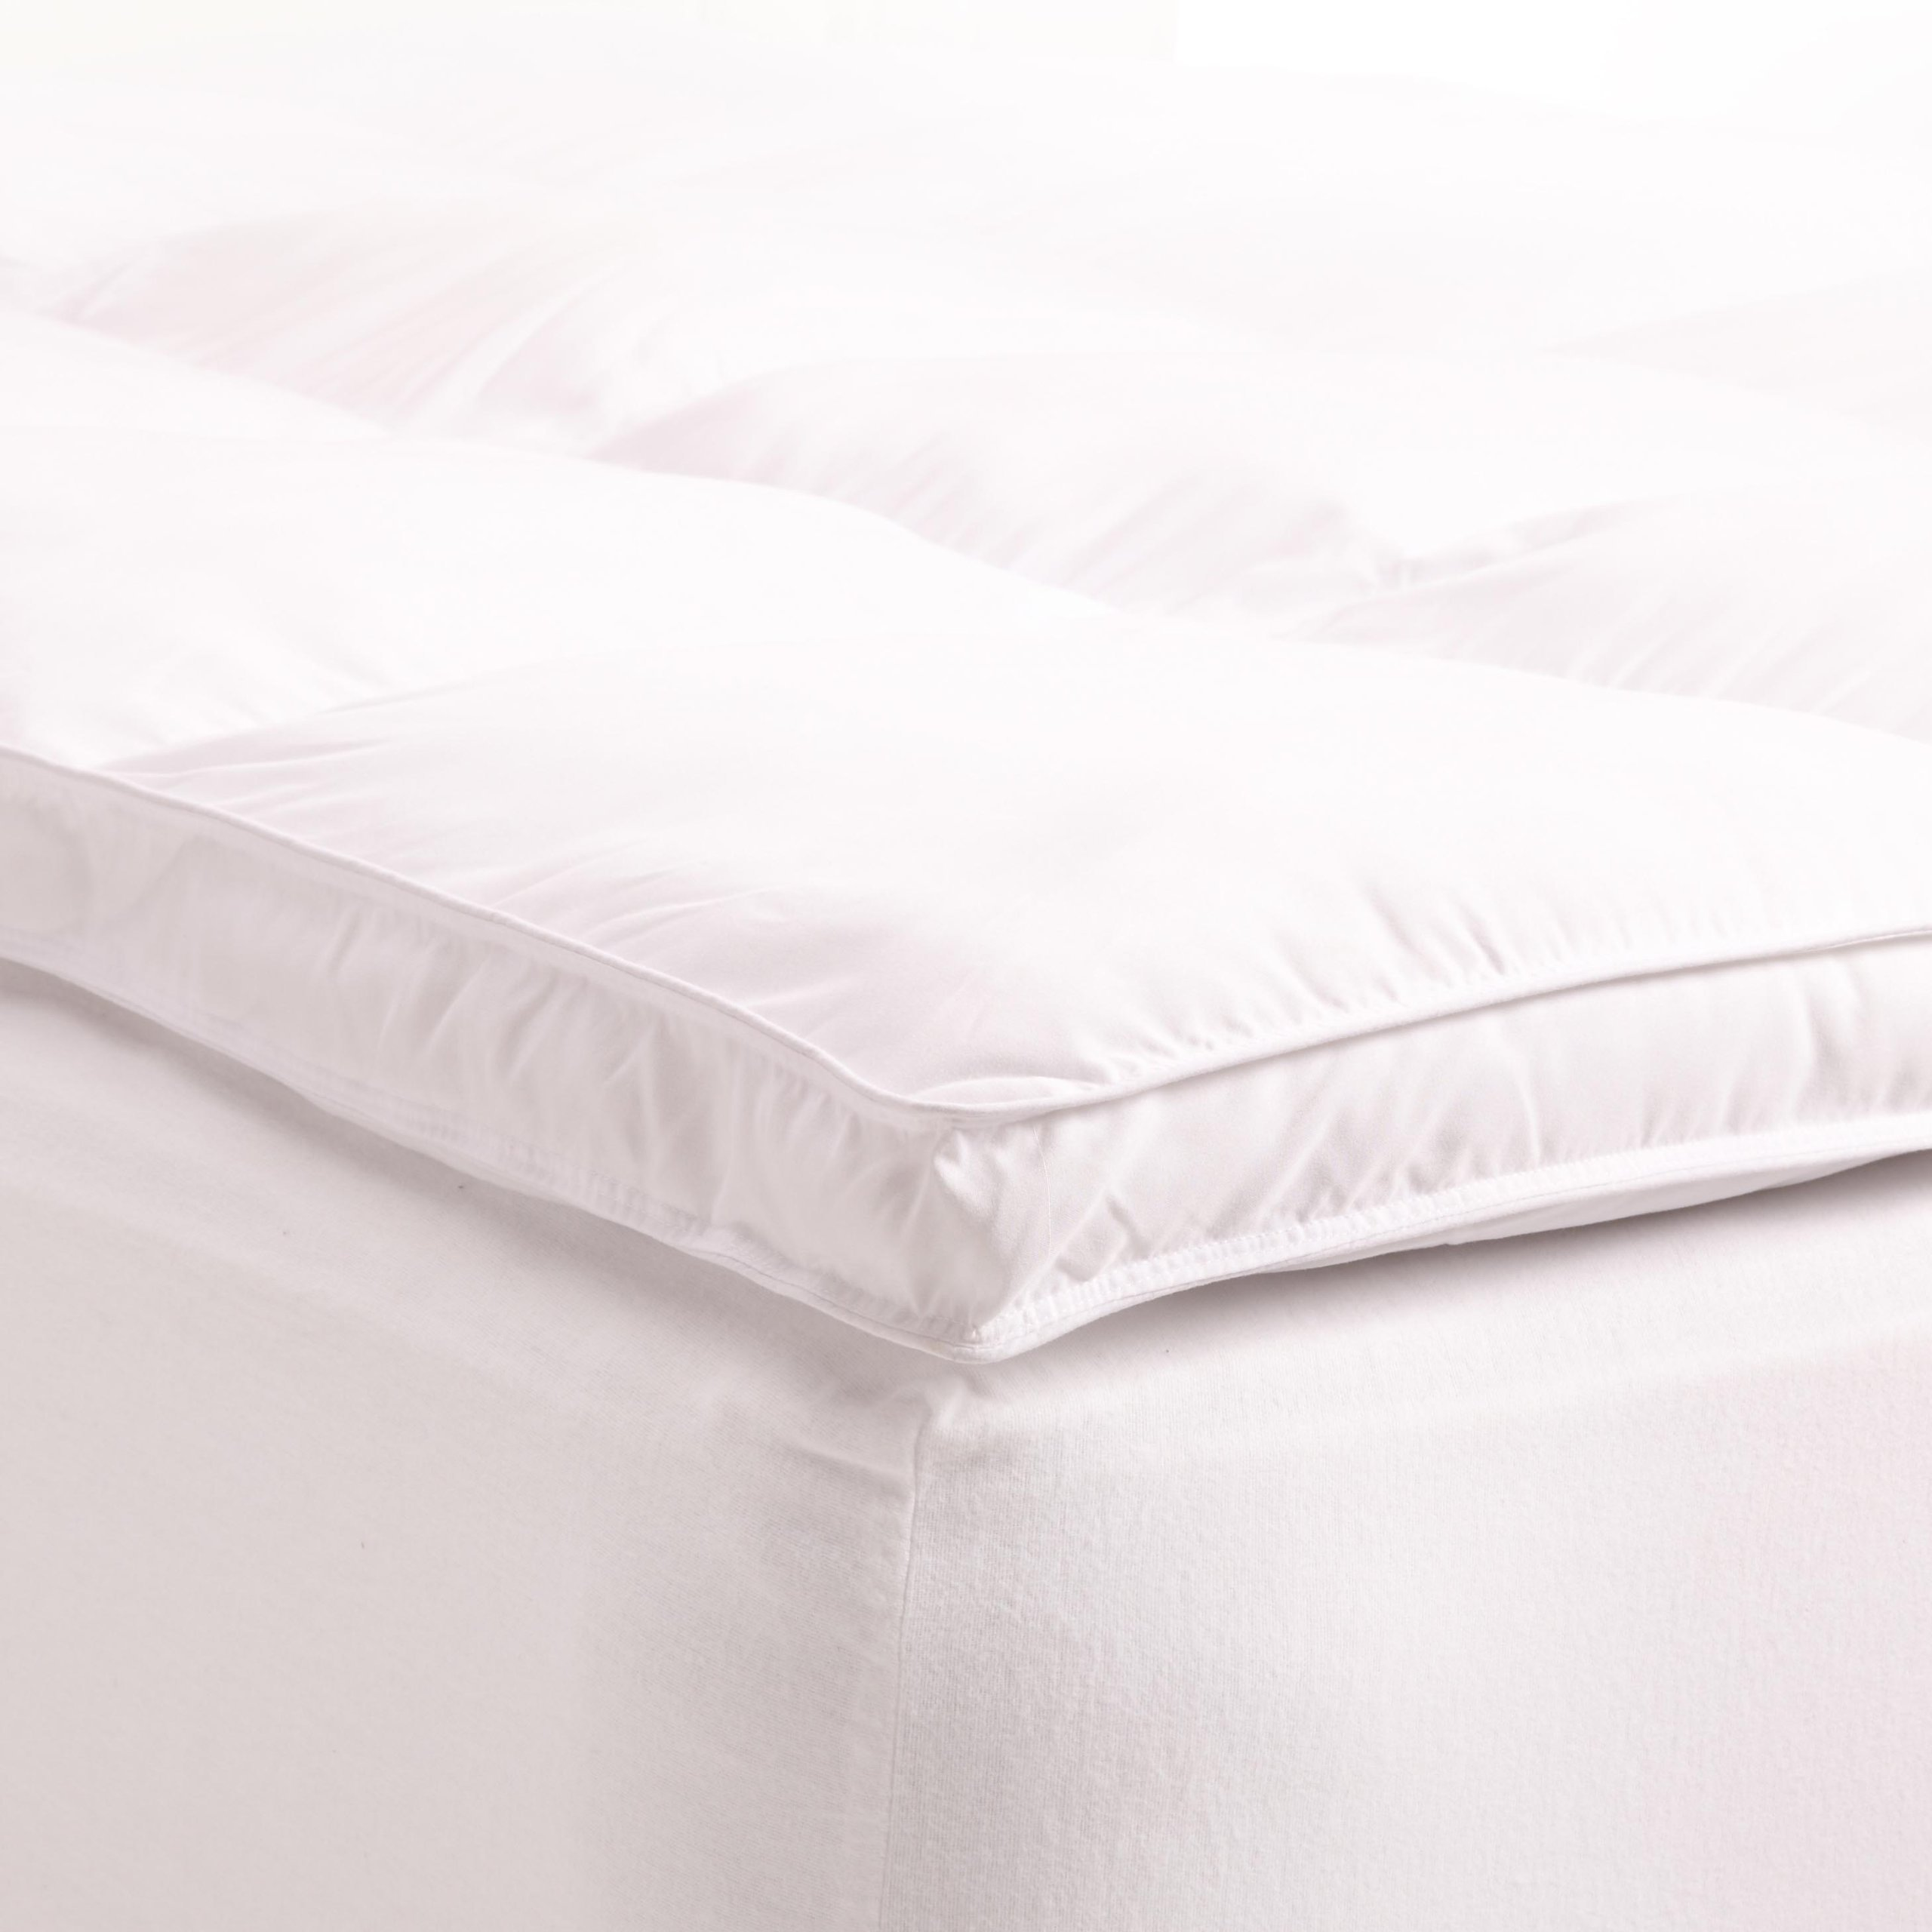 Superior Full Mattress Topper, Hypoallergenic White Down Alternative Featherbed Mattress Pad - Plush, Overfilled, and 2'' Thick